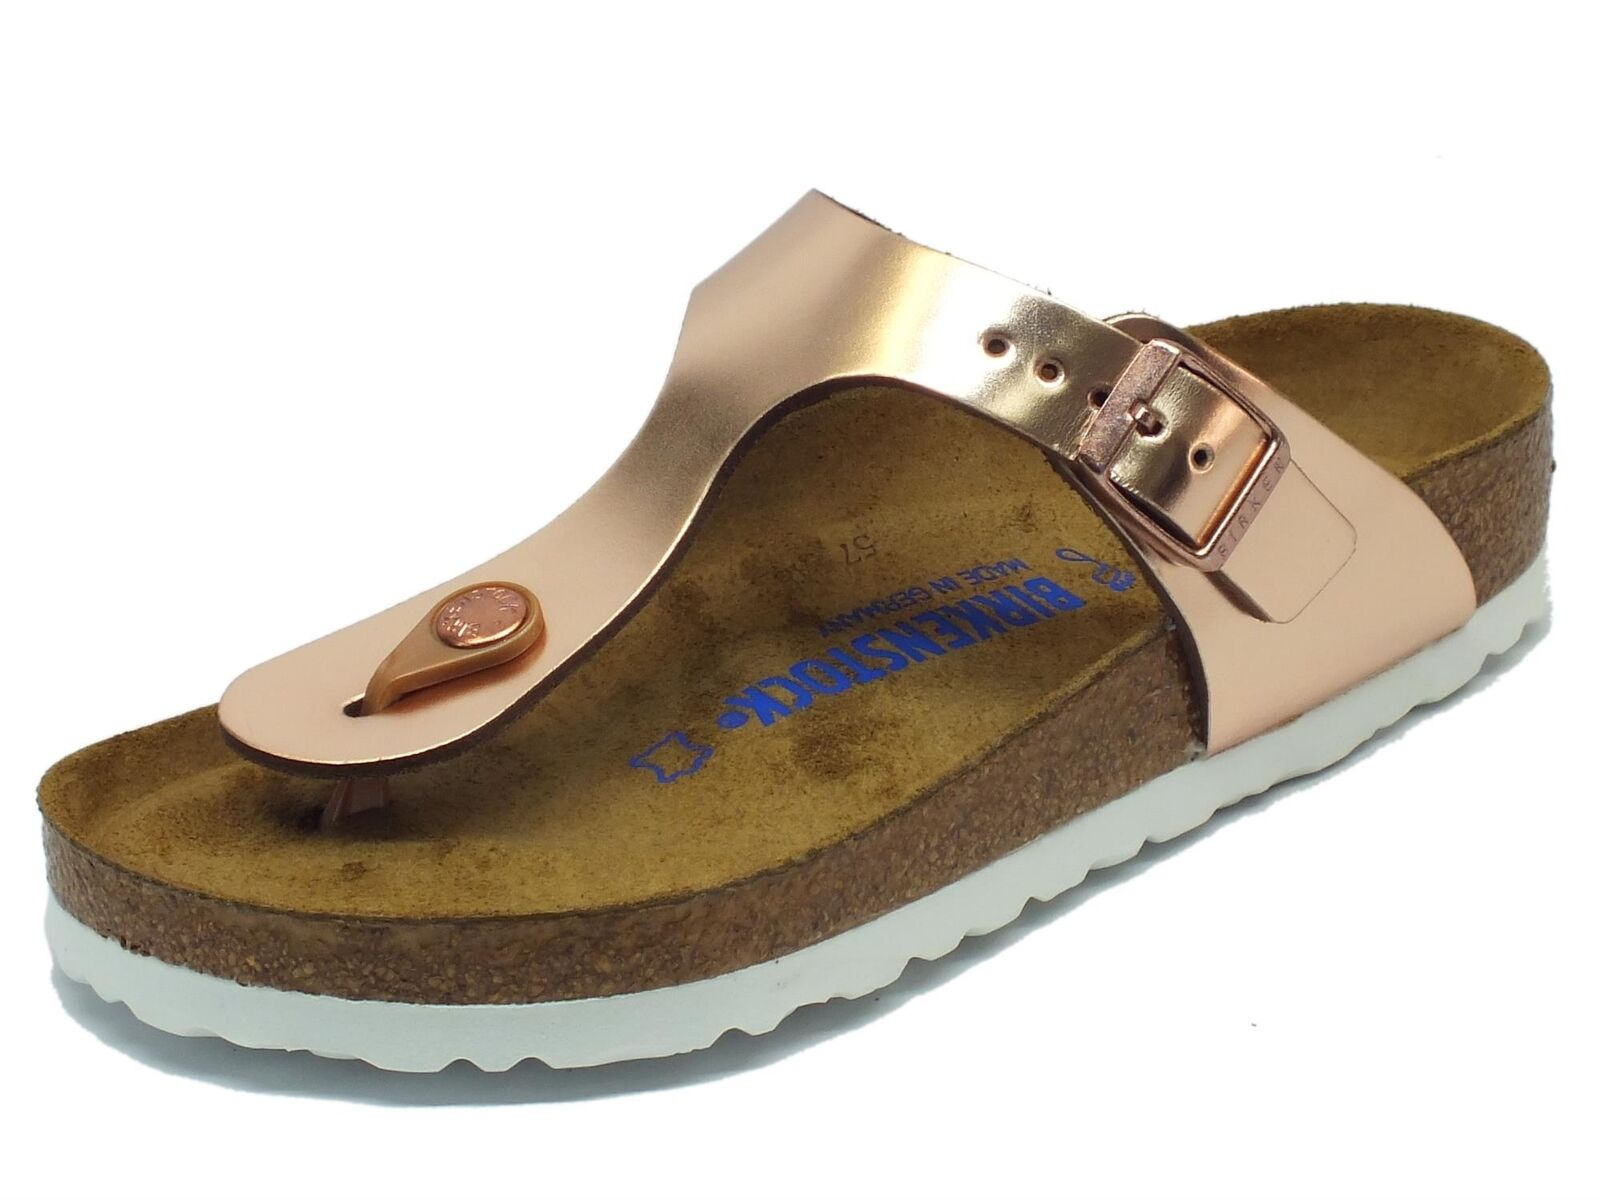 Infradito Birkenstock per donna Gizeh copper BS colore rame metallic copper Gizeh f1ec4a